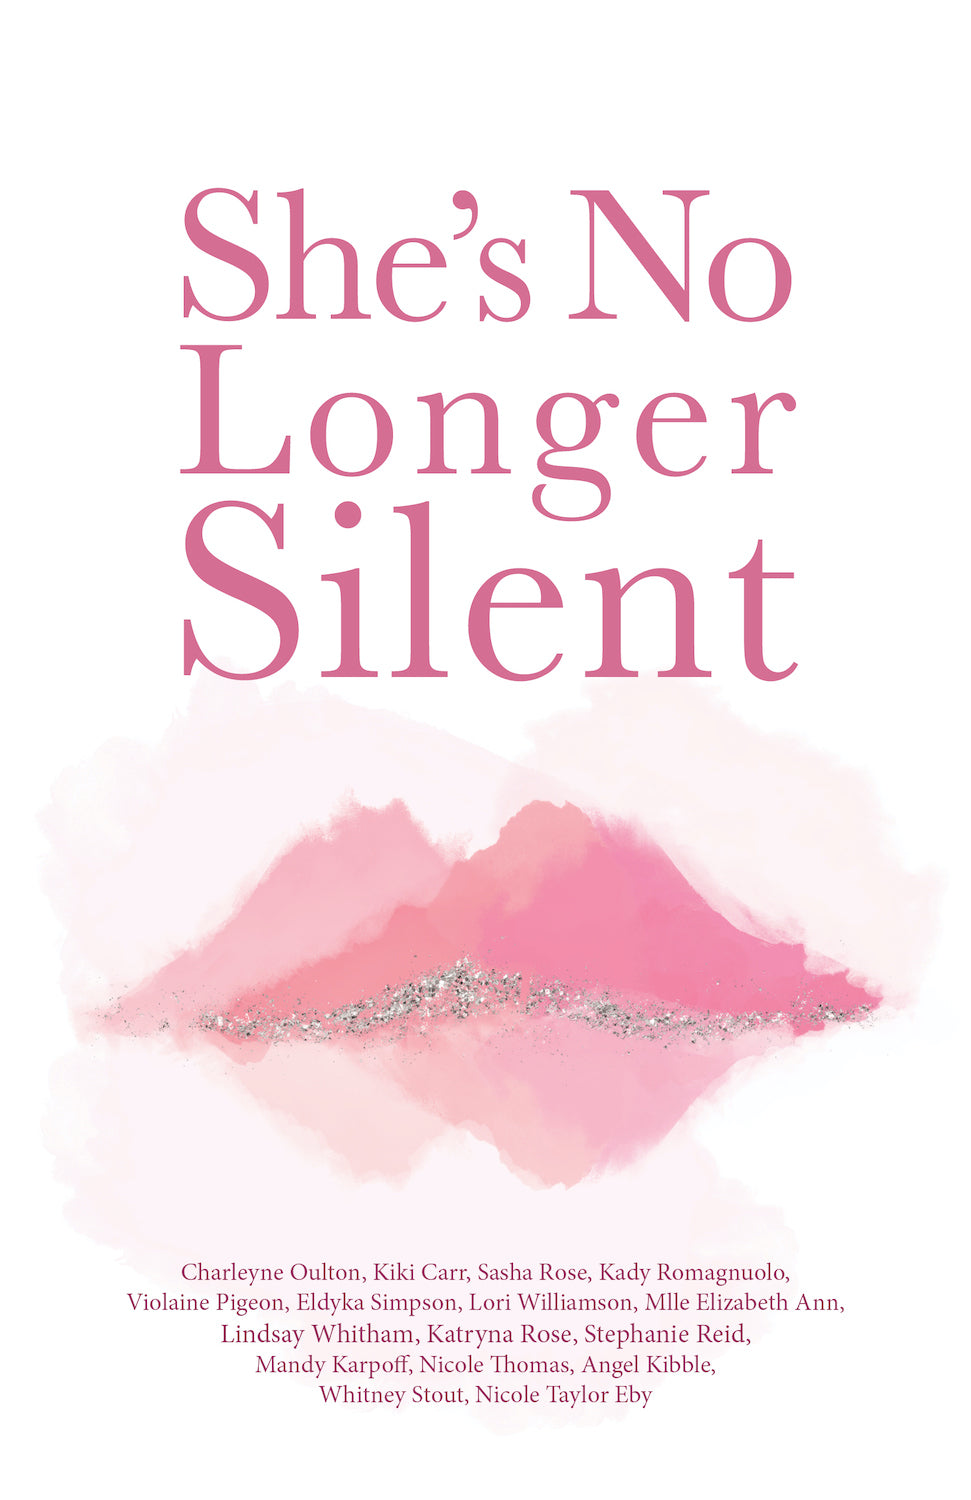 She's No Longer Silent (pre-order)